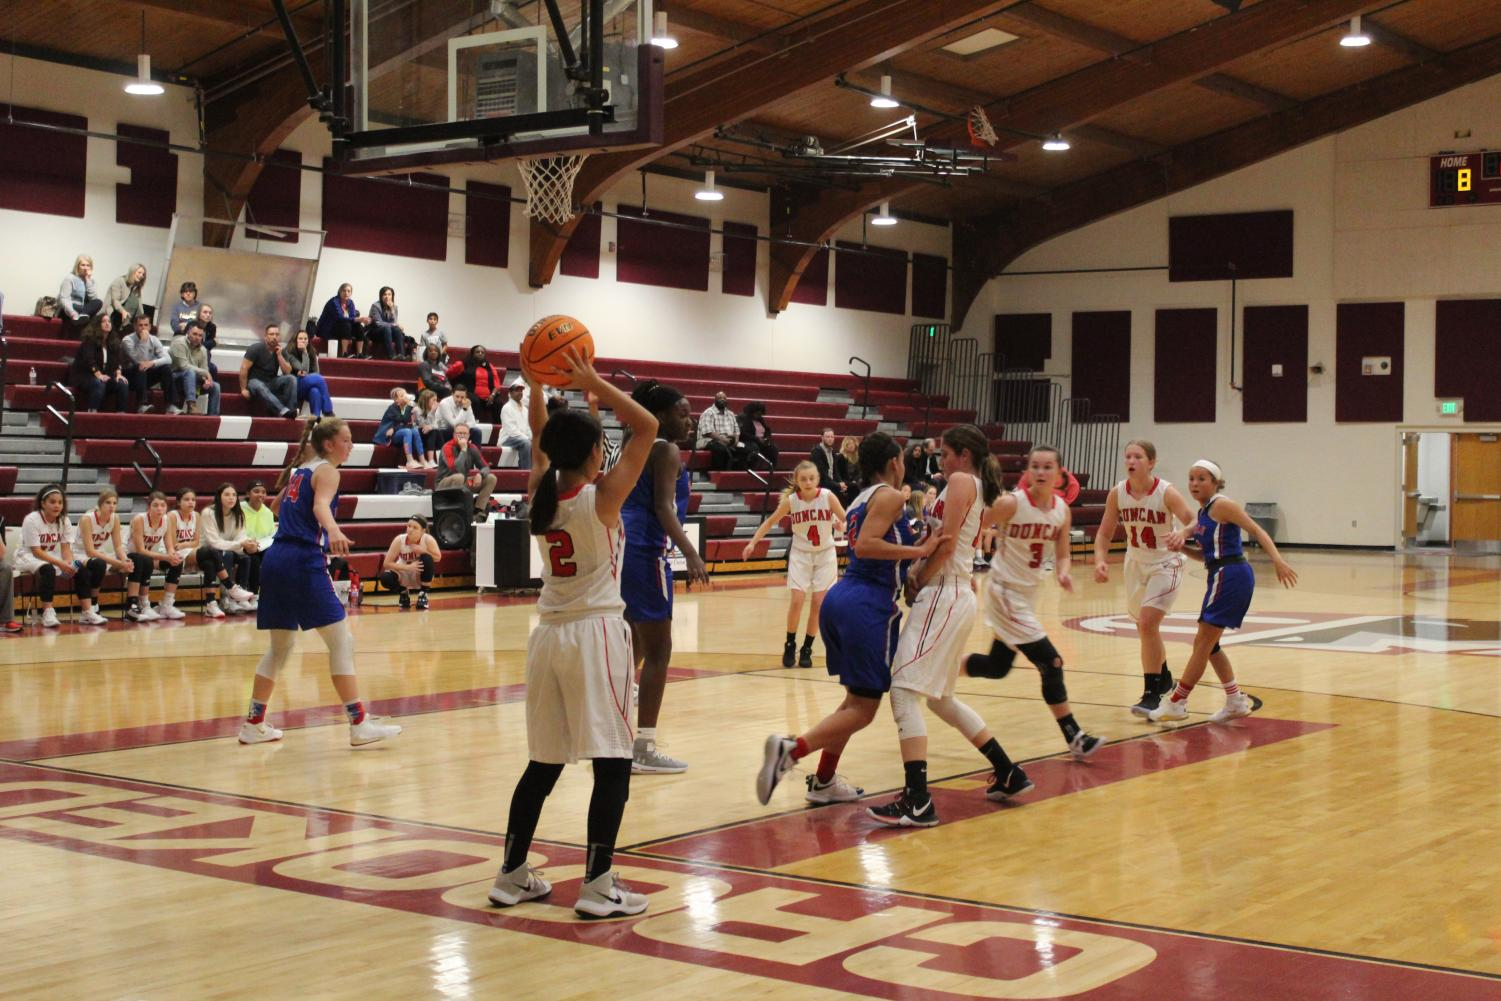 Eighth-grade Girls Basketball runs an inbound play